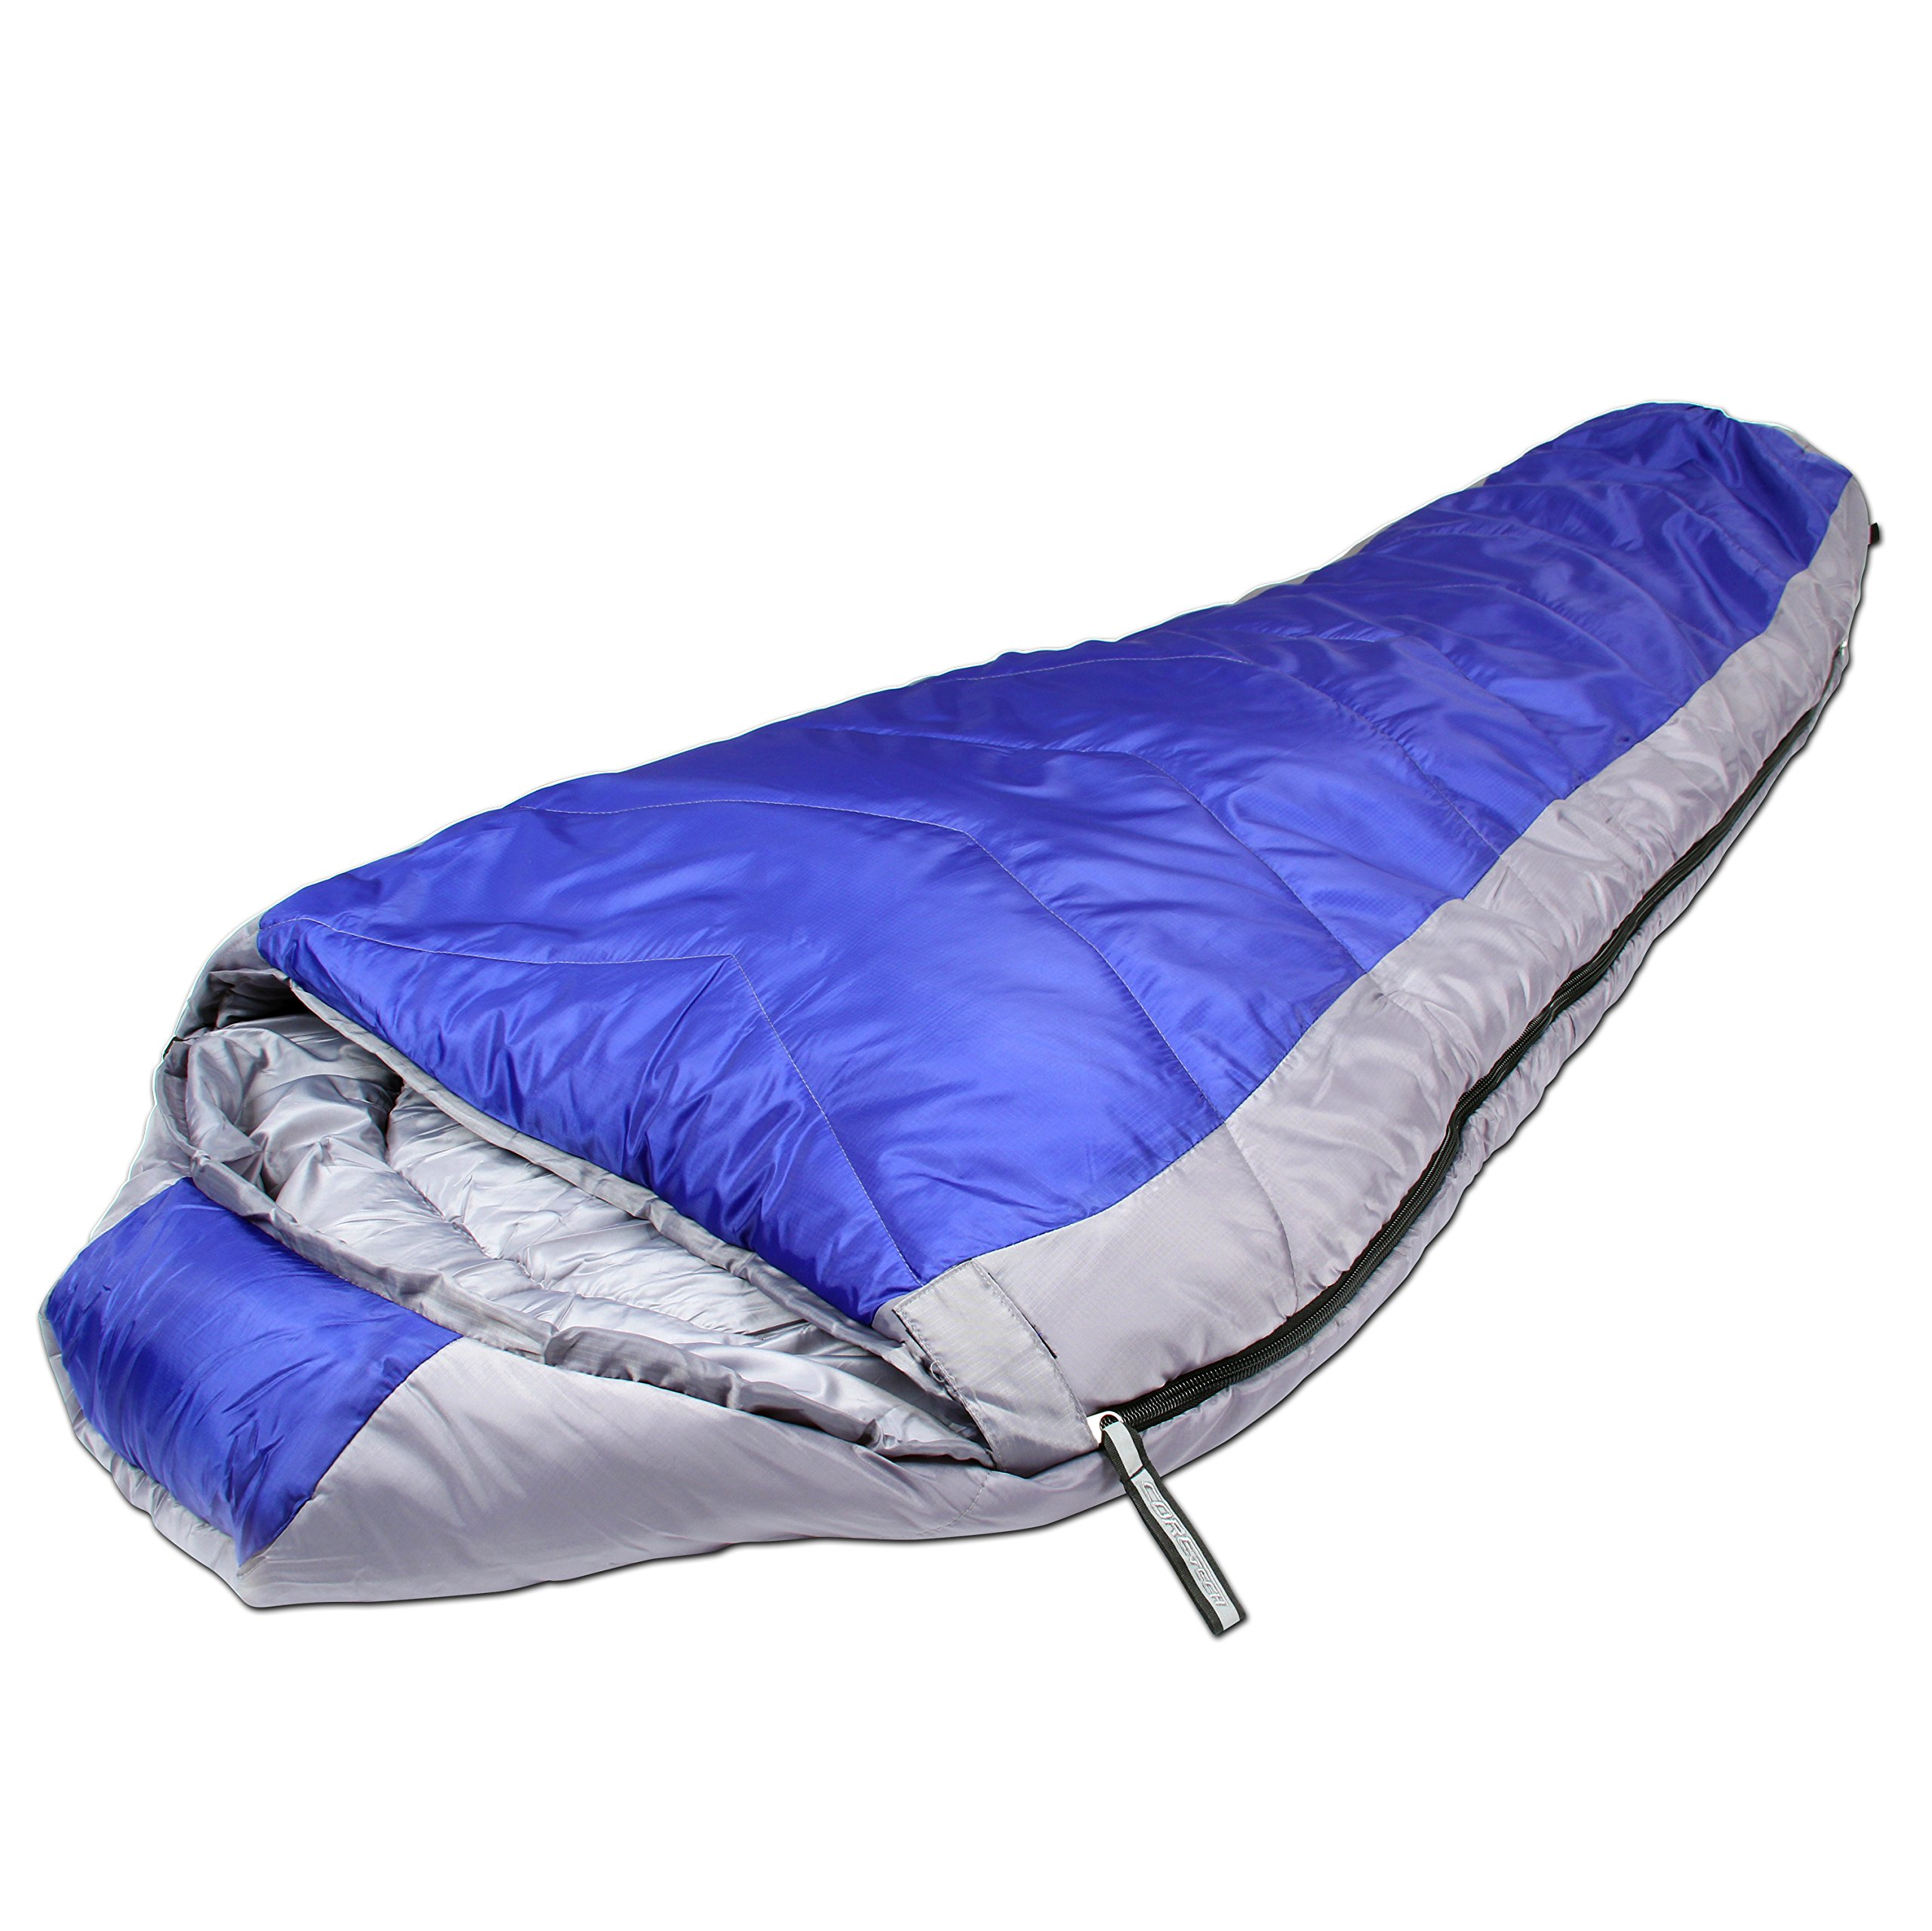 Northstar Tactical Coretech Sleeping Bag, Blue, 3.5-Pound